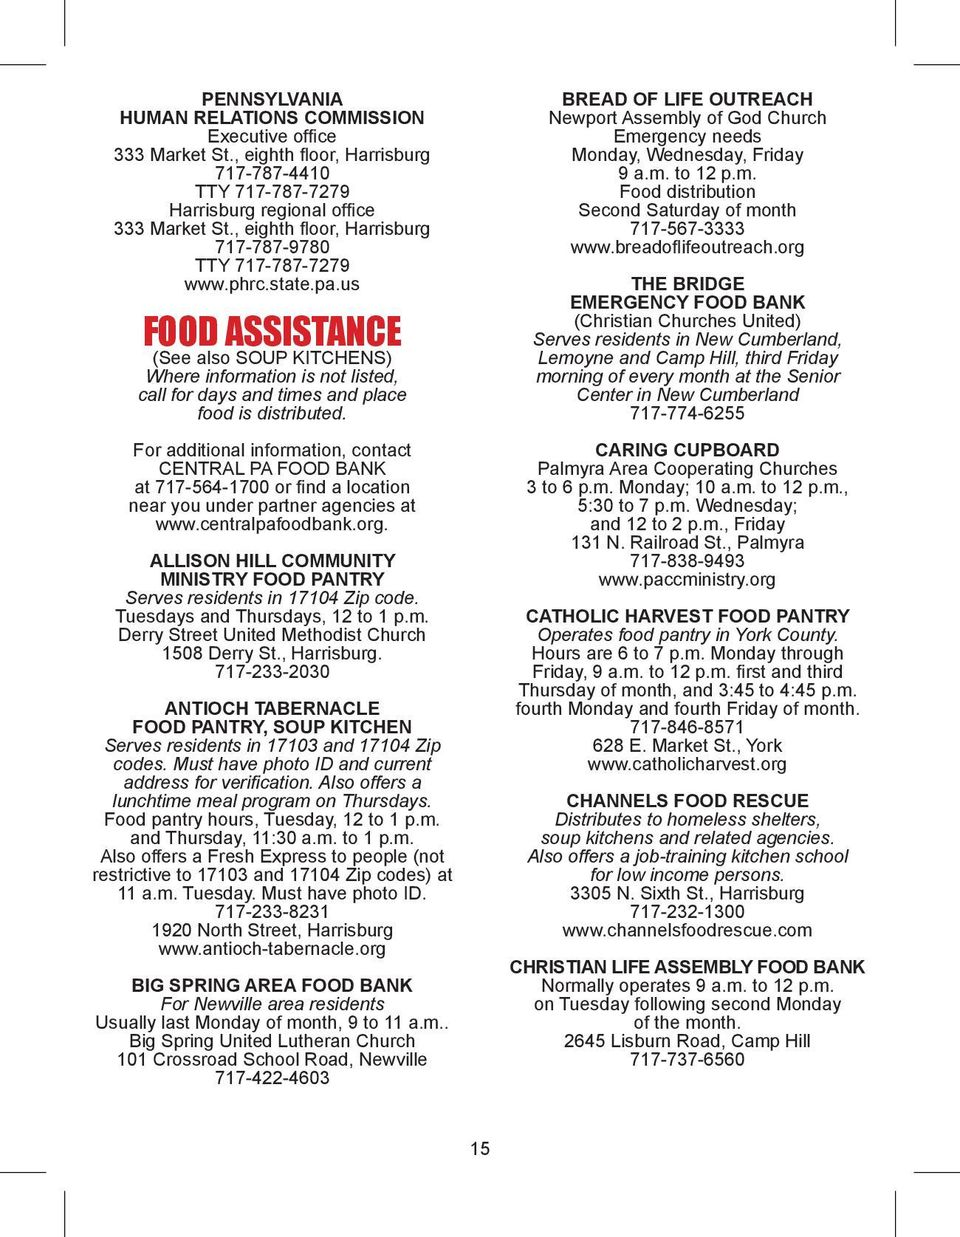 us FOOD ASSISTANCE (See also SOUP KITCHENS) Where information is not listed, call for days and times and place food is distributed.